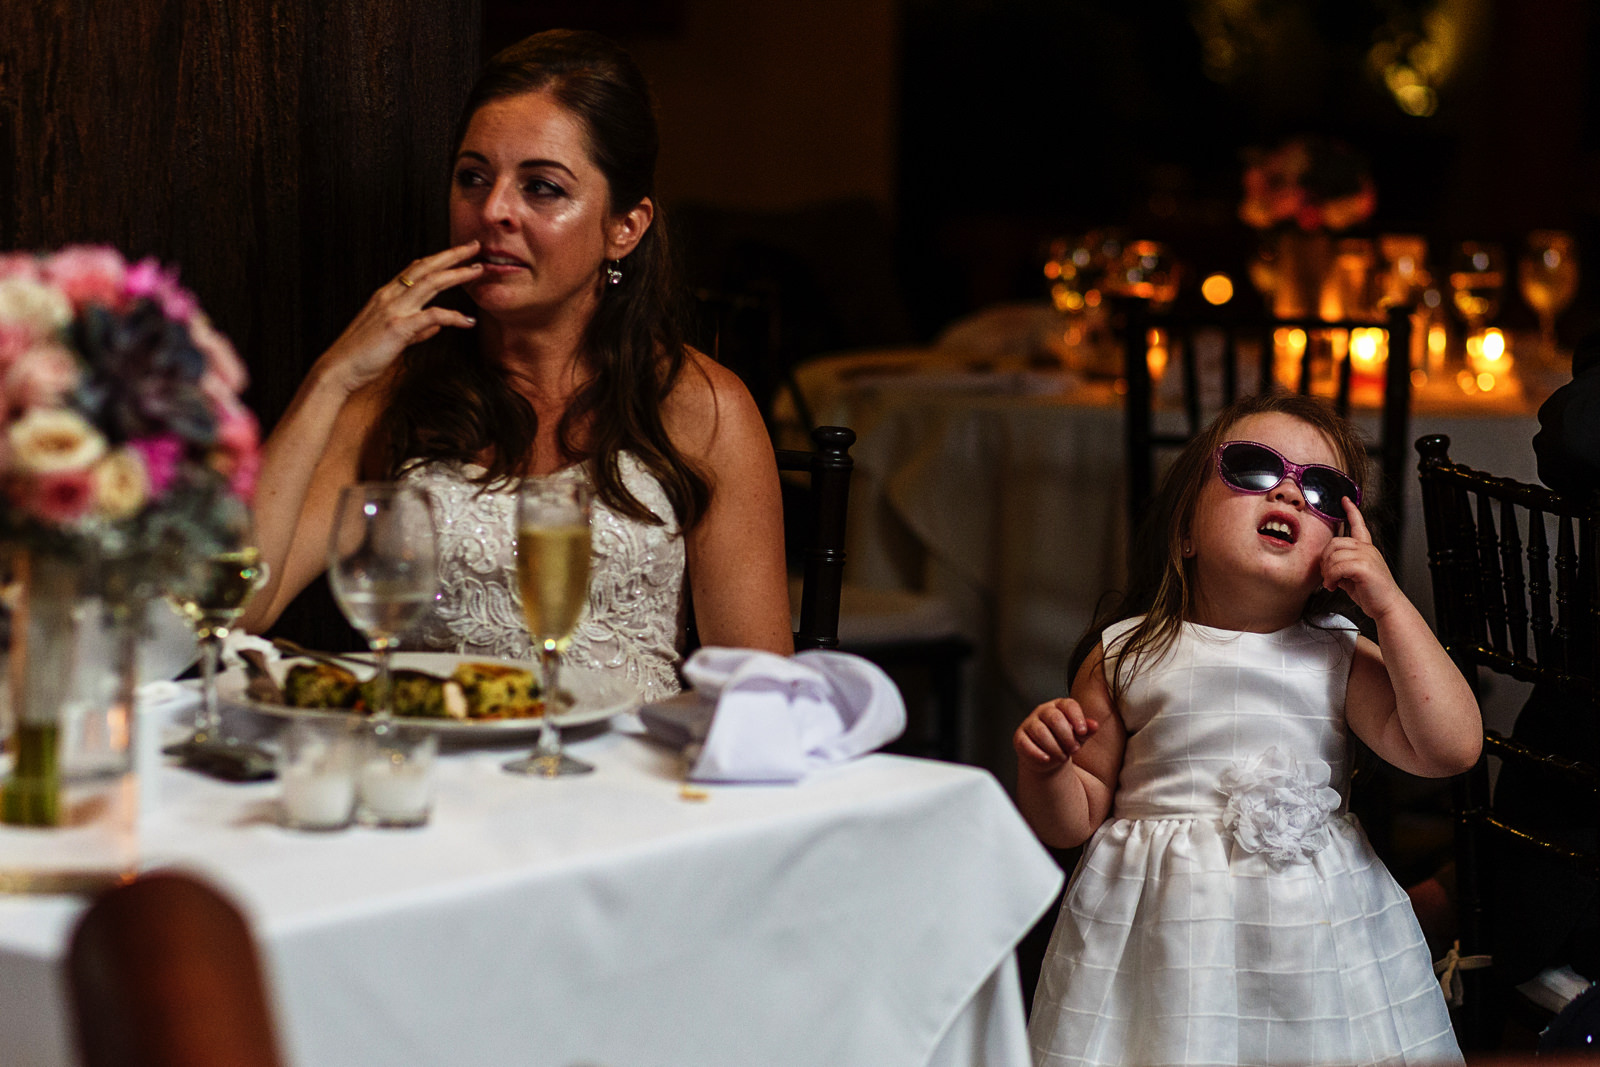 Little girl poses with sunglasses right next to the bride during the speeches